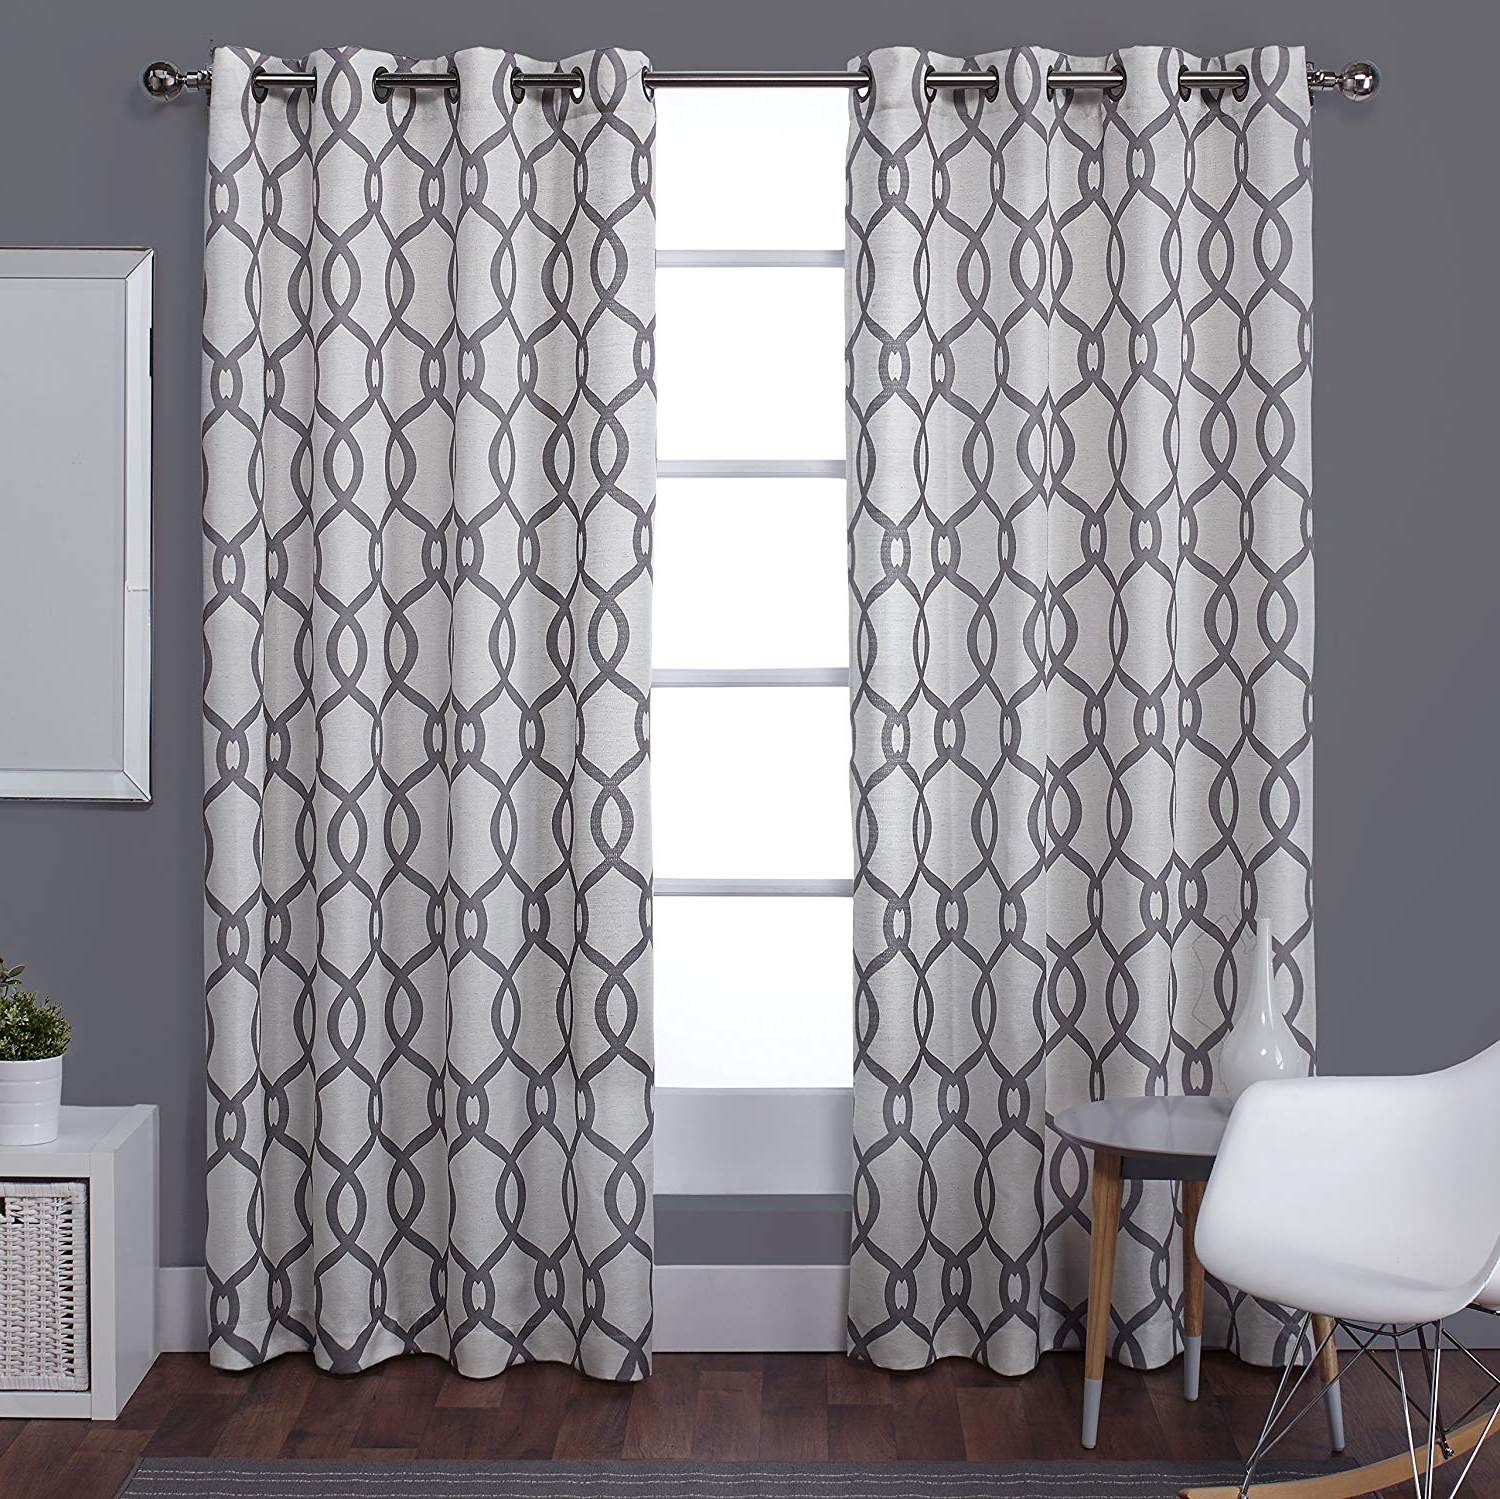 Exclusive Home Curtains Kochi Linen Blend Window Curtain Panel Pair With Grommet Top, 54x63, Black Pearl, 2 Piece In Most Current Kochi Linen Blend Window Grommet Top Curtain Panel Pairs (View 3 of 20)